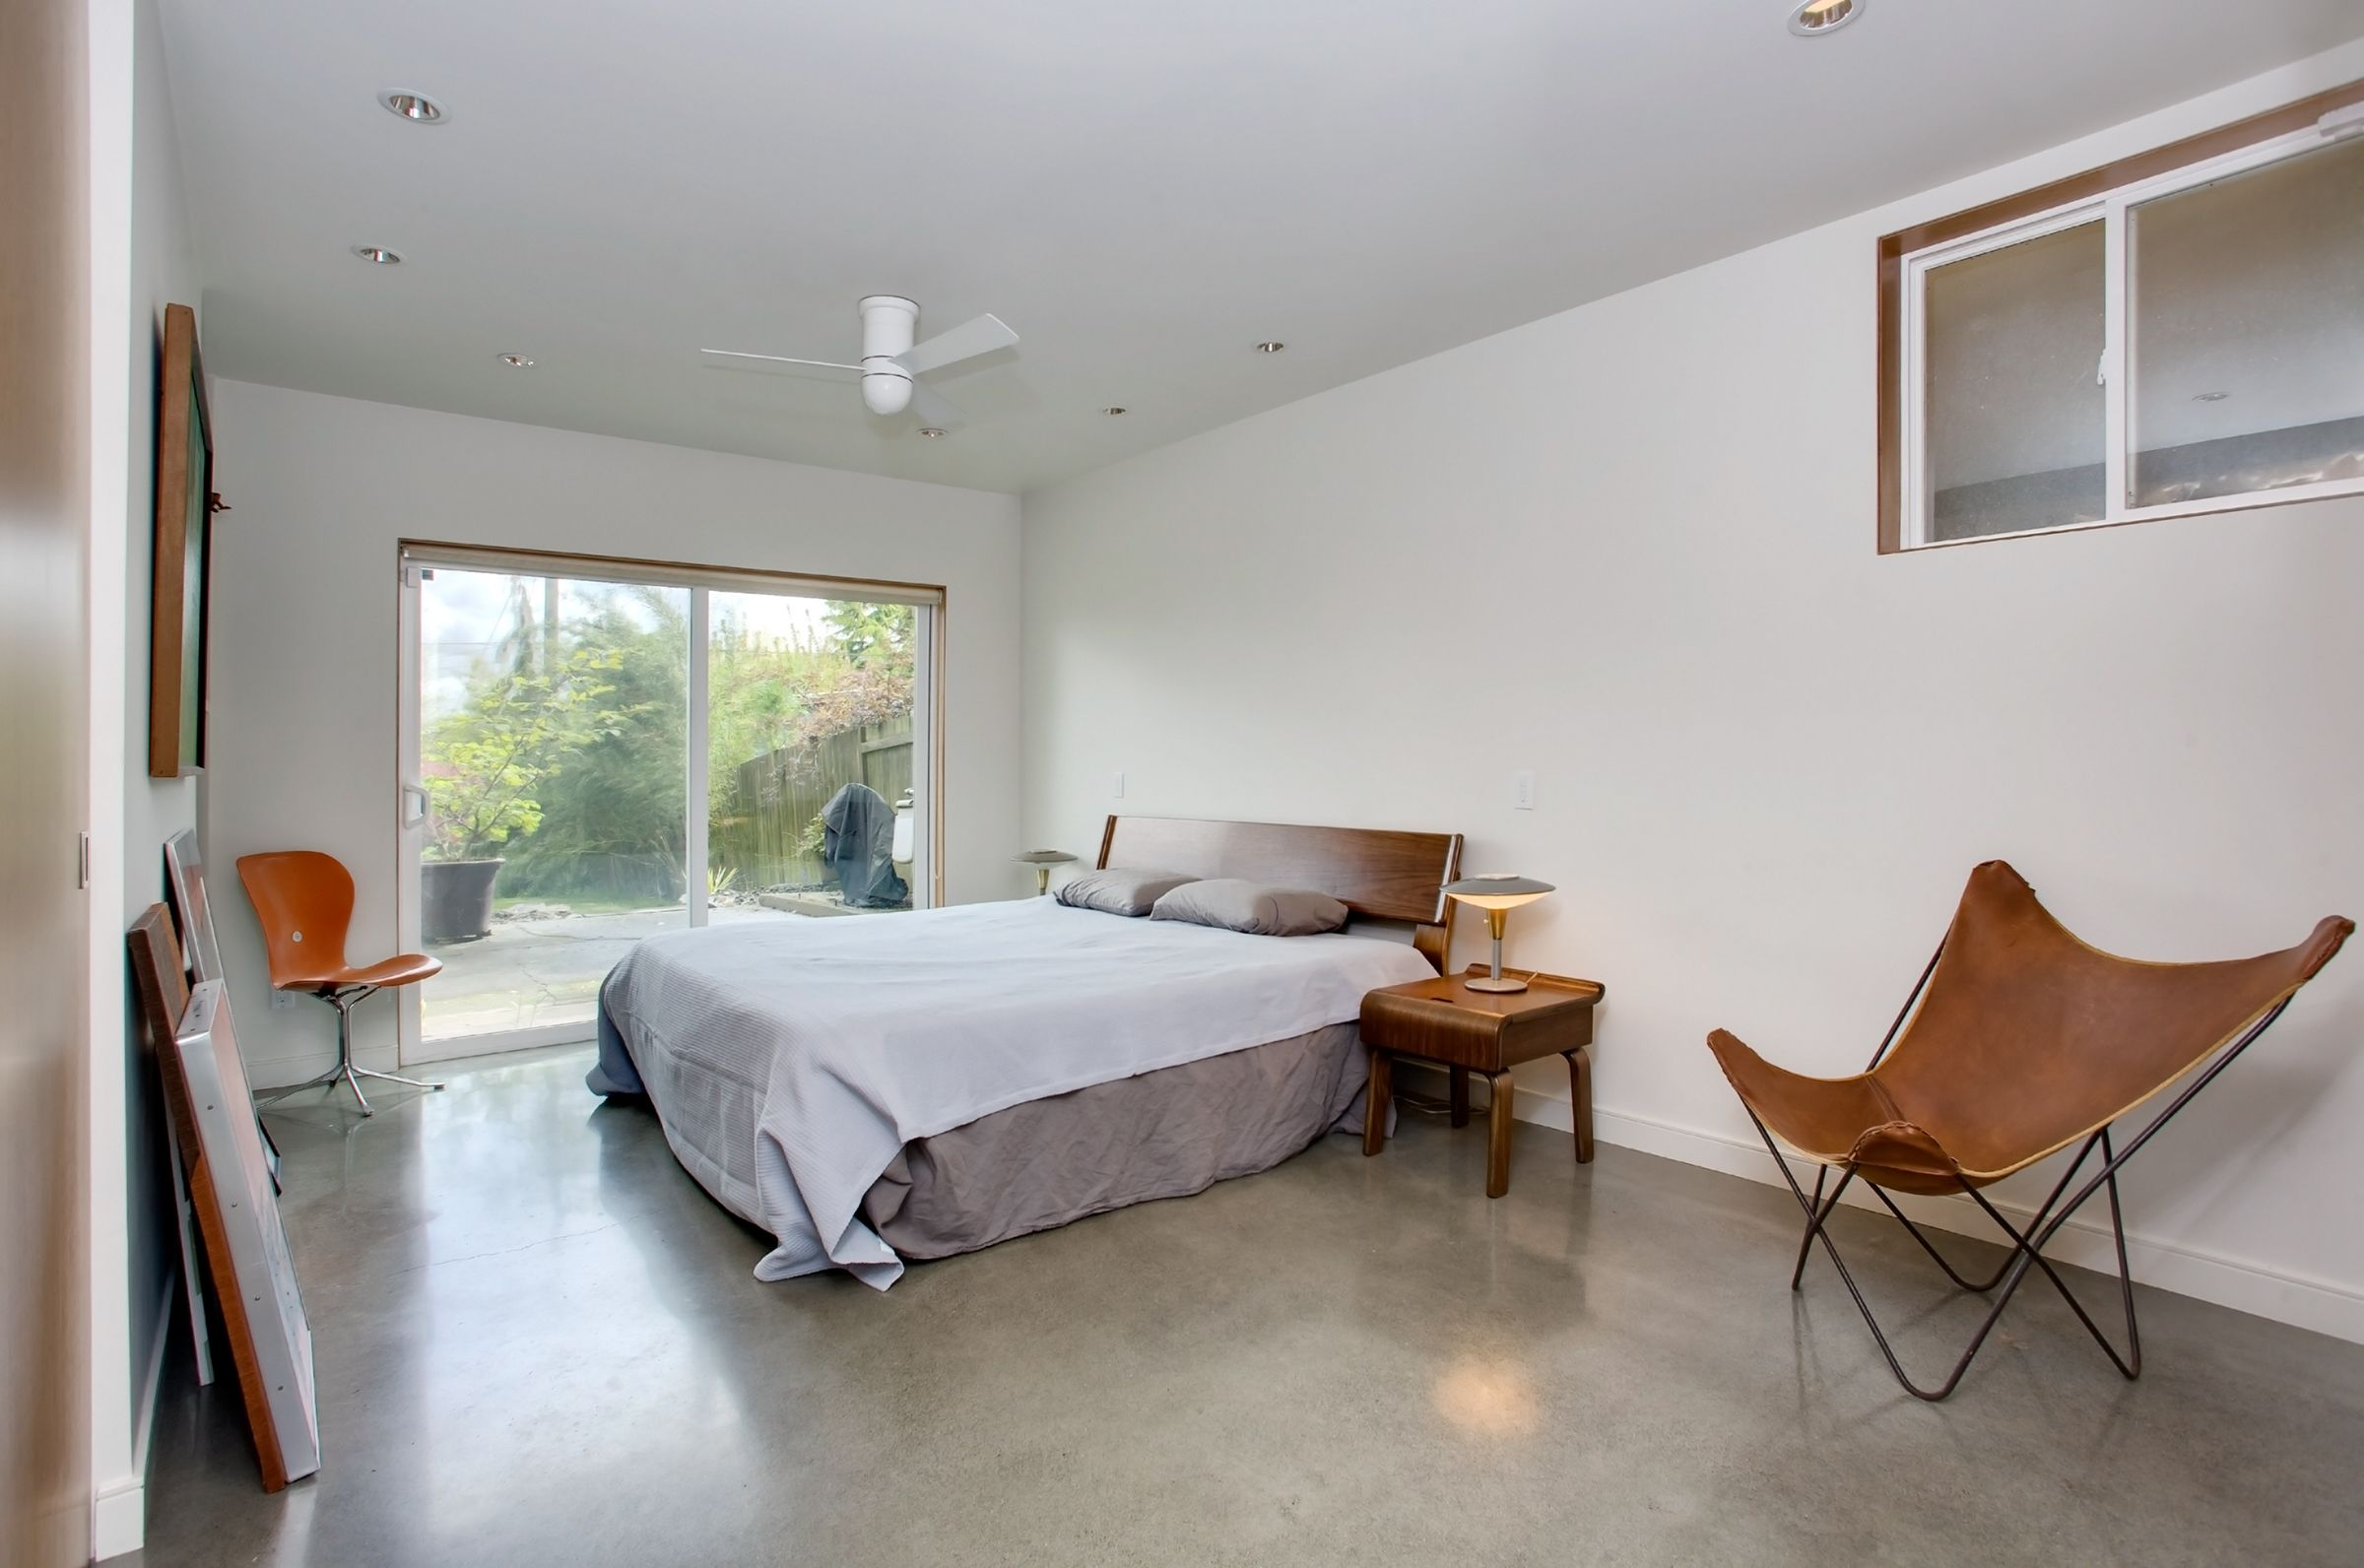 New master bedroom has polished concrete floors with